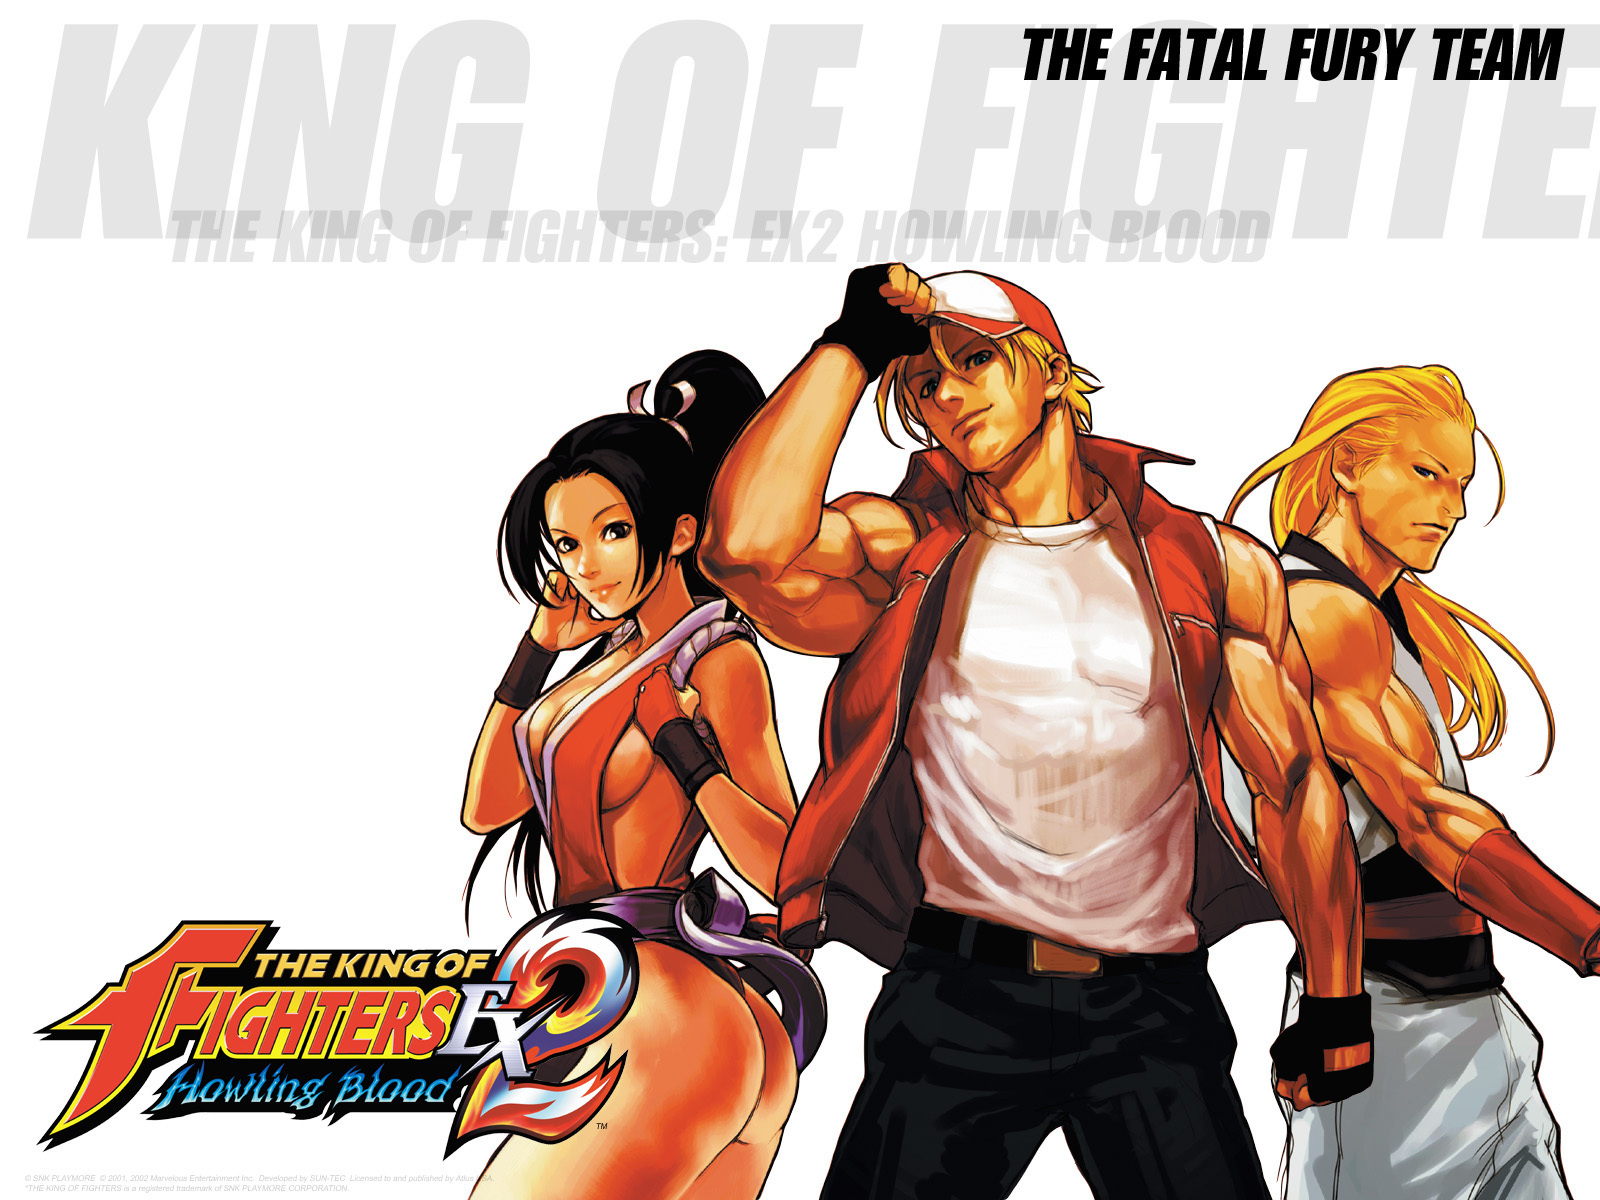 Kof Ex2 The King Of Fighters Wallpaper 13368207 Fanpop